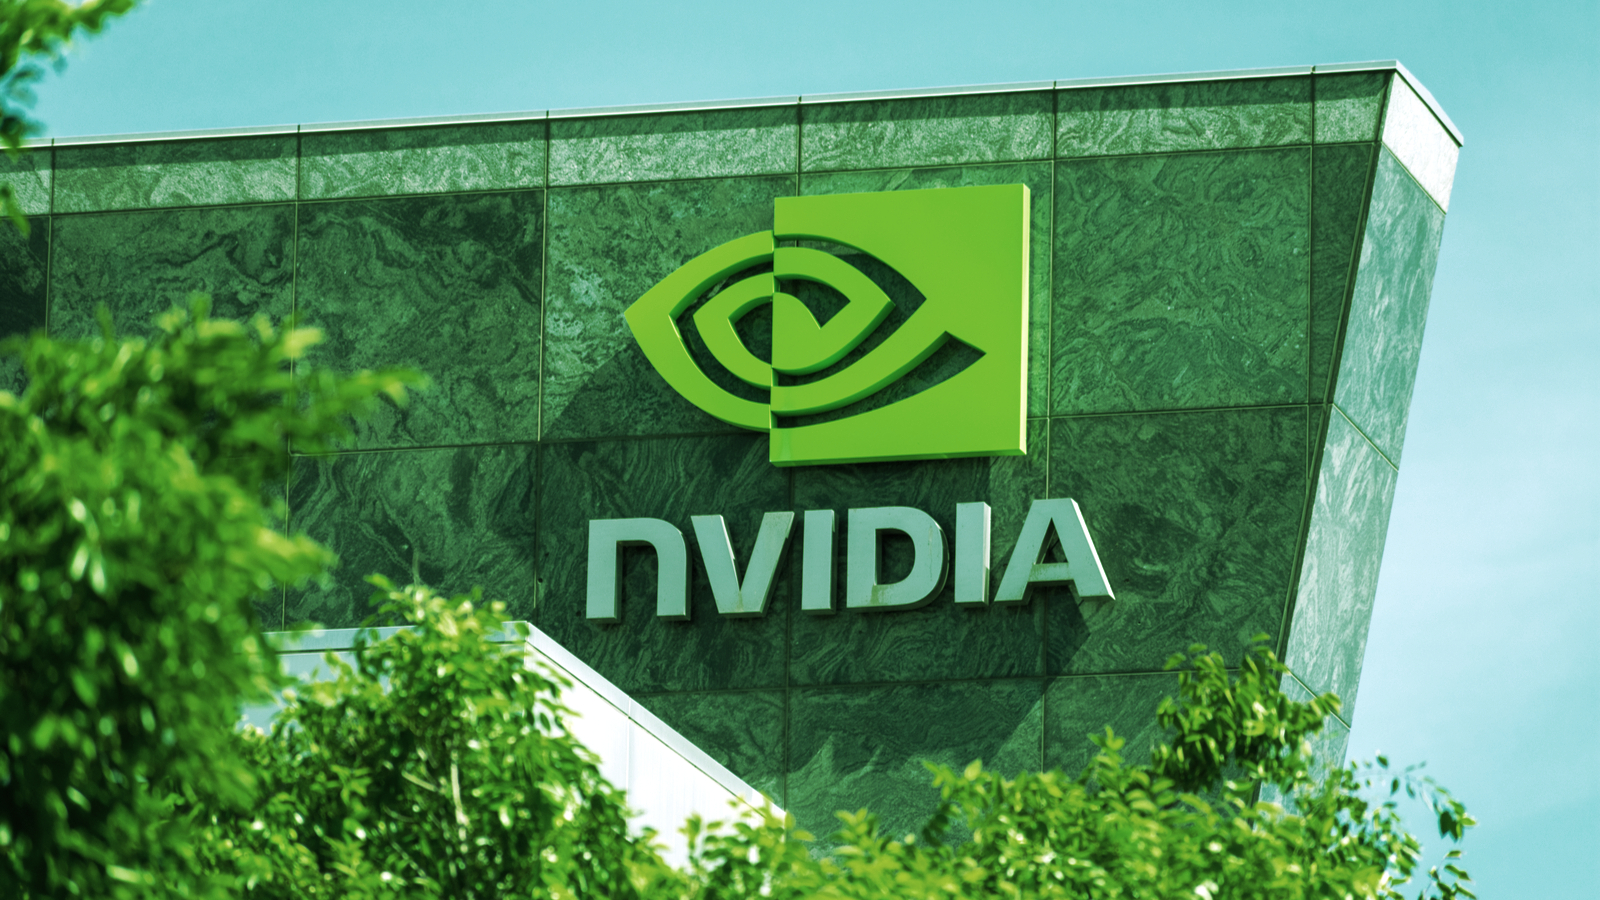 Nvidia's Ethereum Mining Chips Fall $134M Short of Q2 Earnings Projections